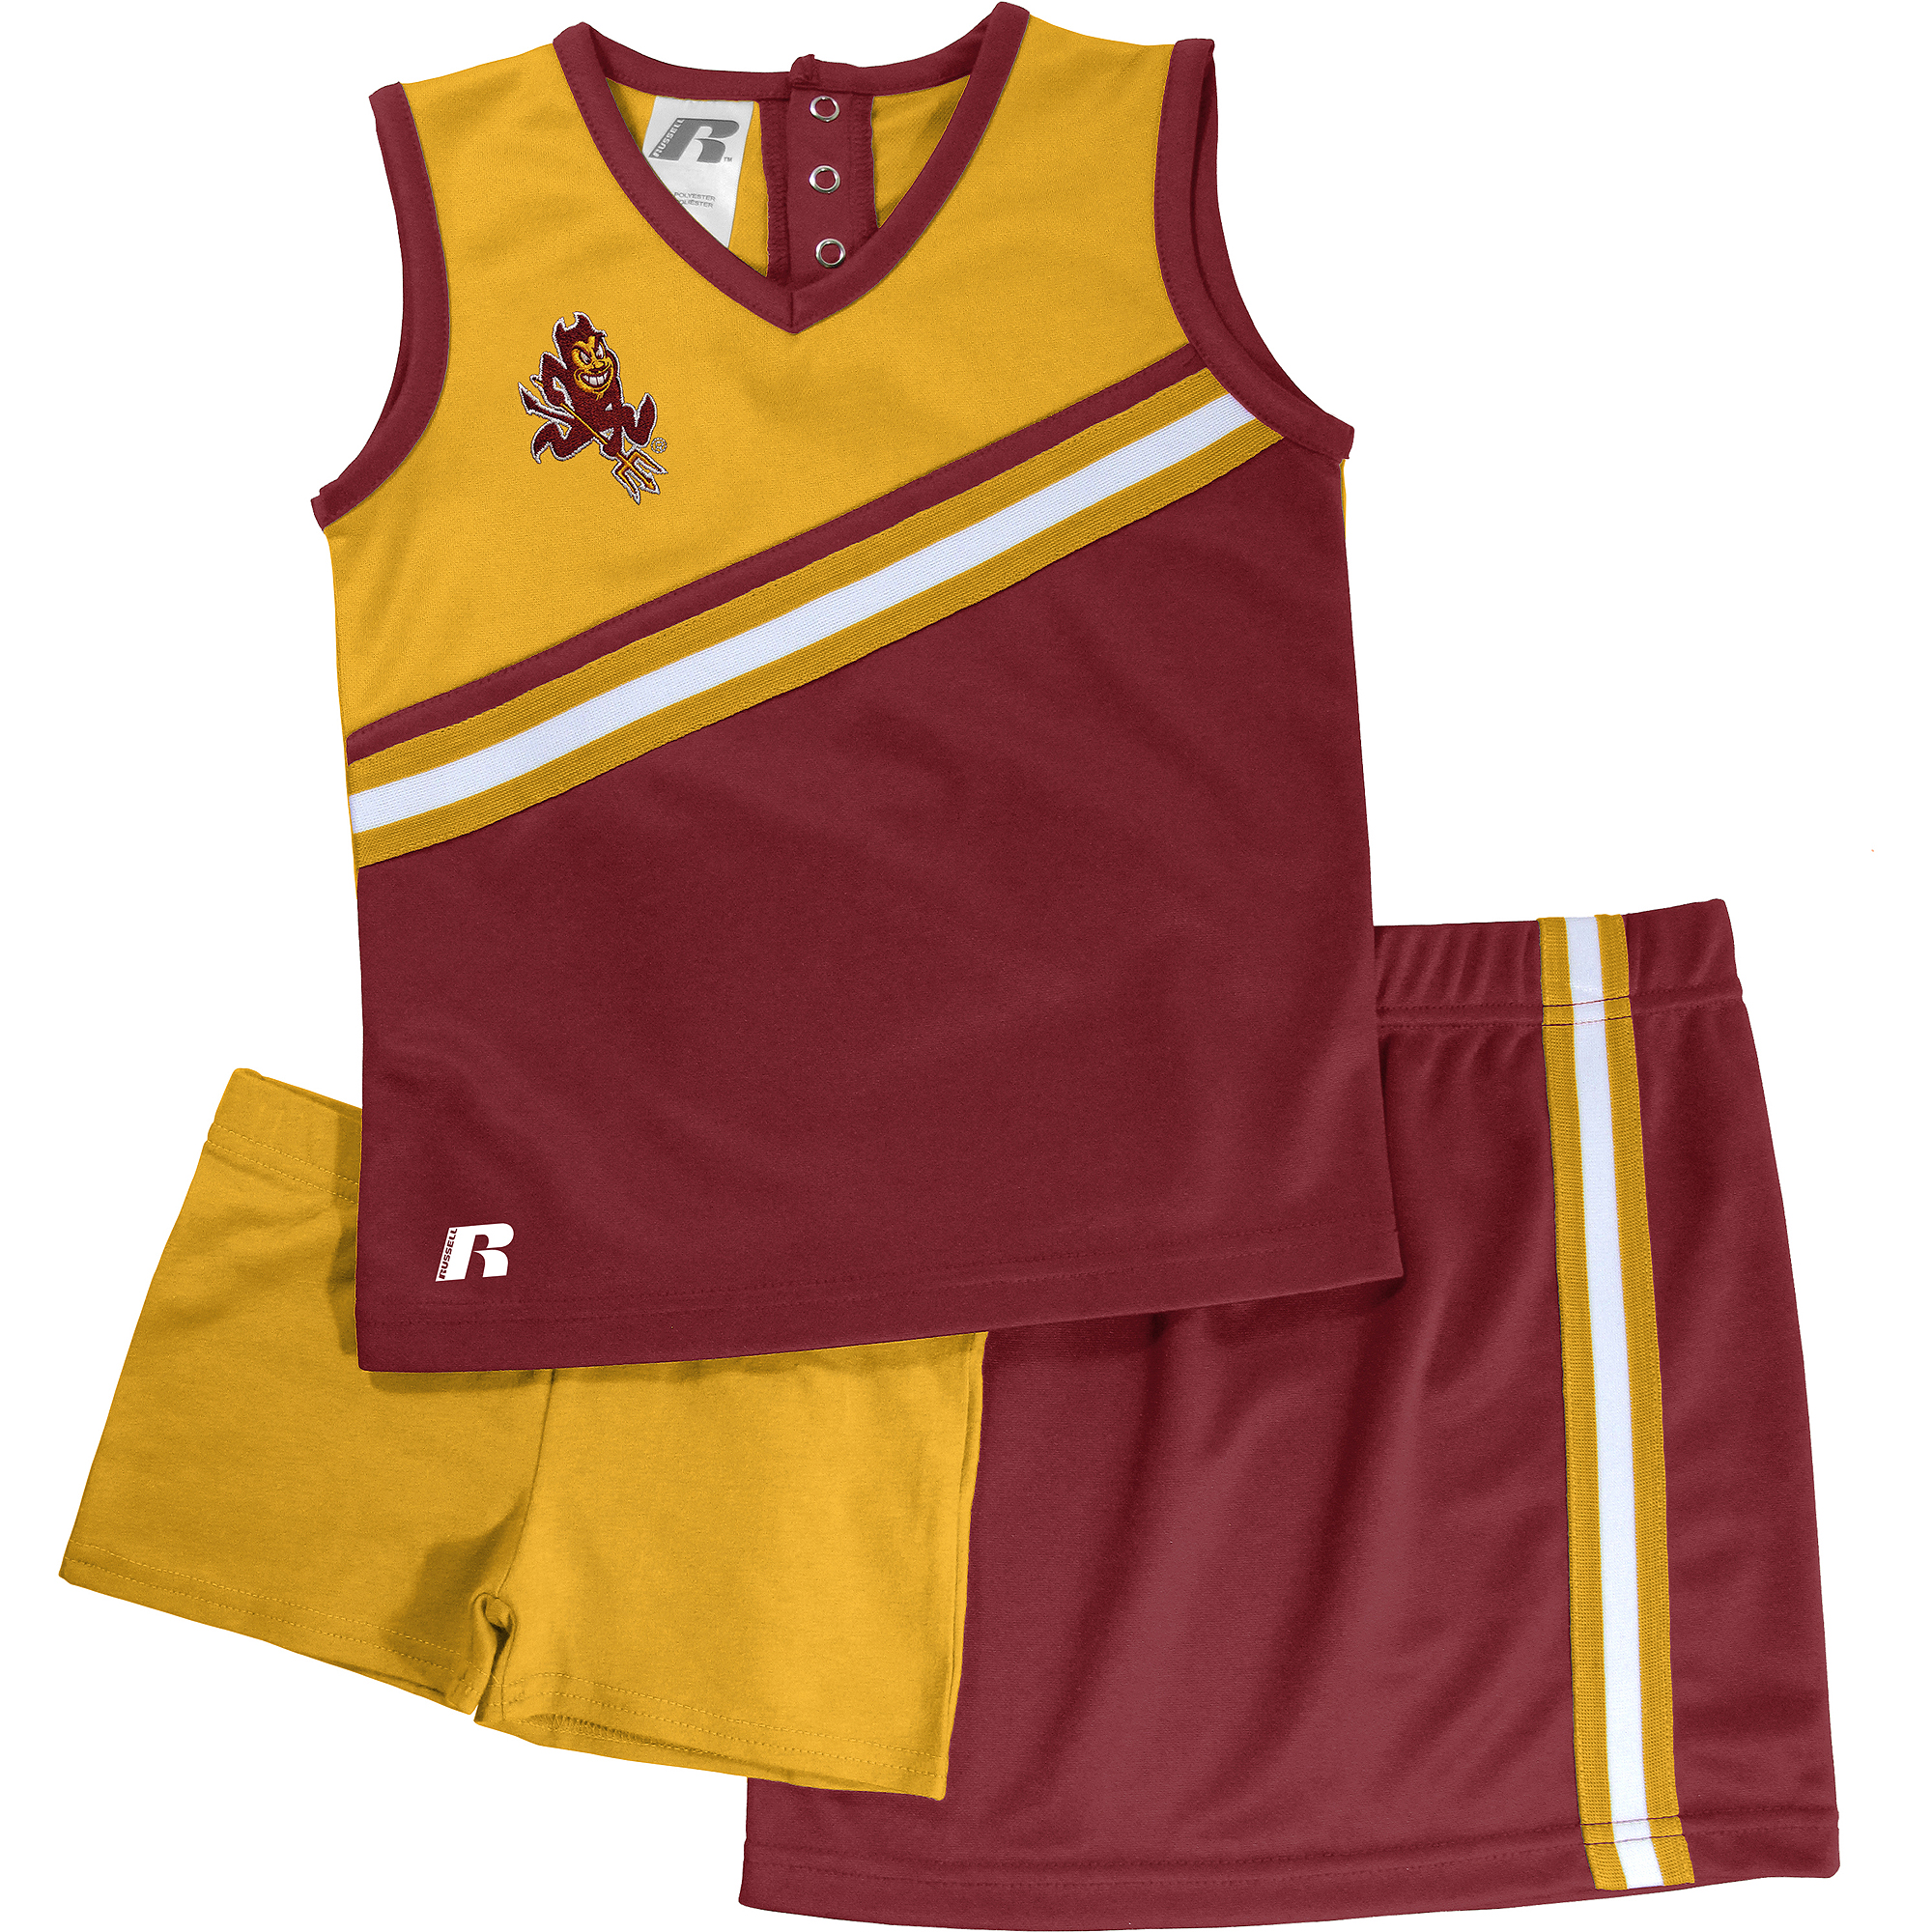 Russell NCAA Arizona State Sun Devils, Toddler Girls 3 pc Cheer Set